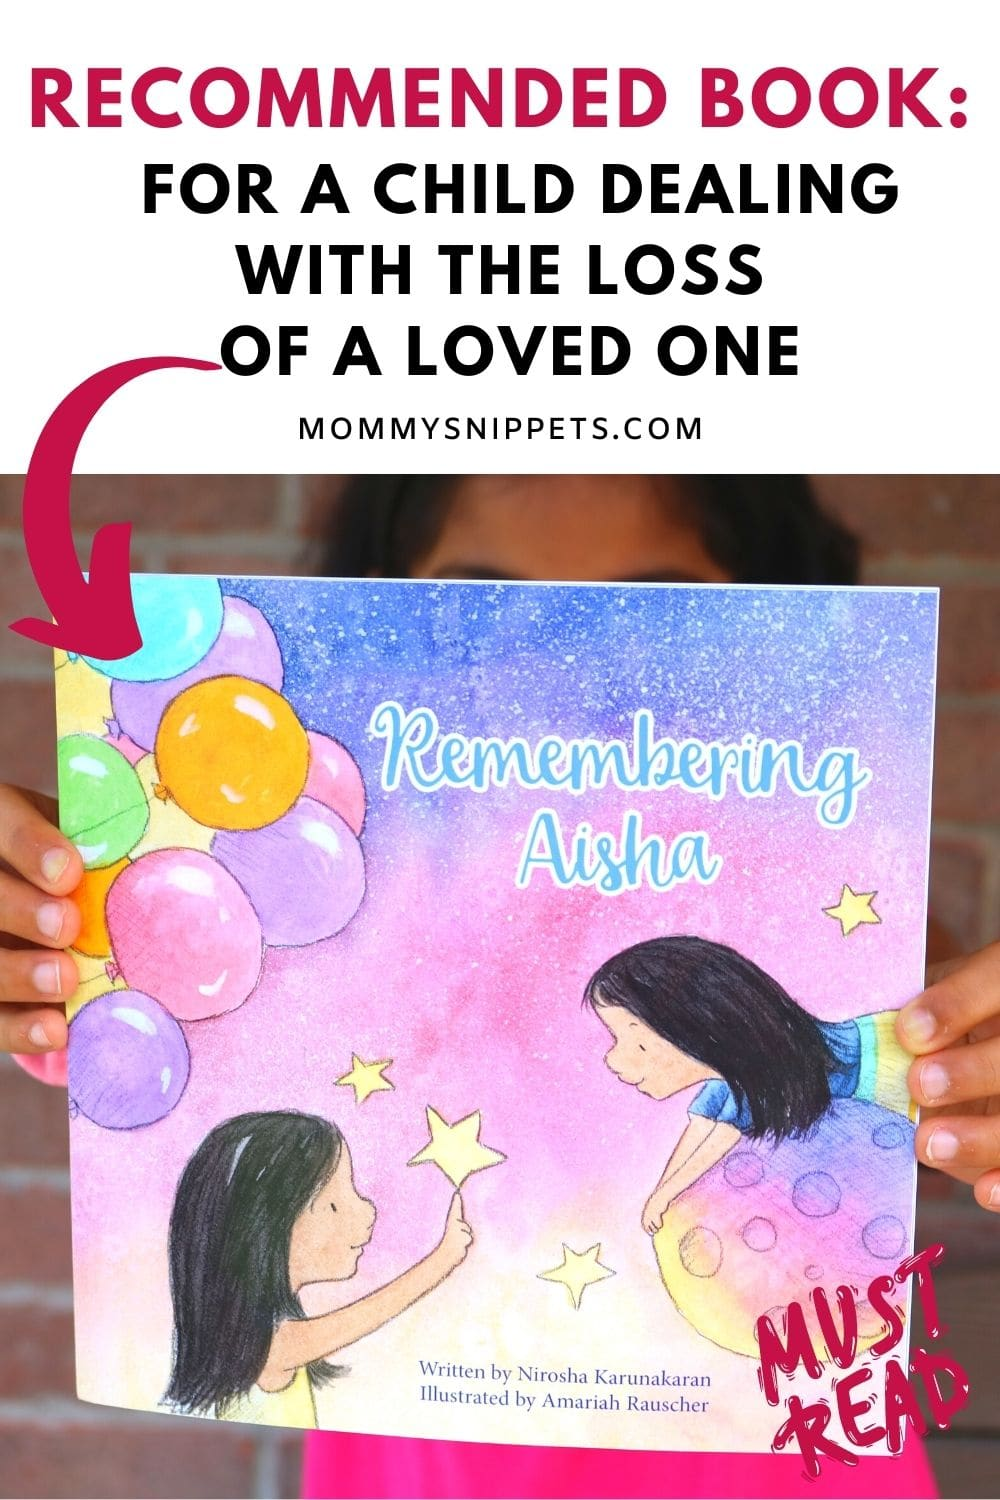 A Comforting Book to Help a Child Deal With the Loss of a Loved One Remembering Aisha (3)